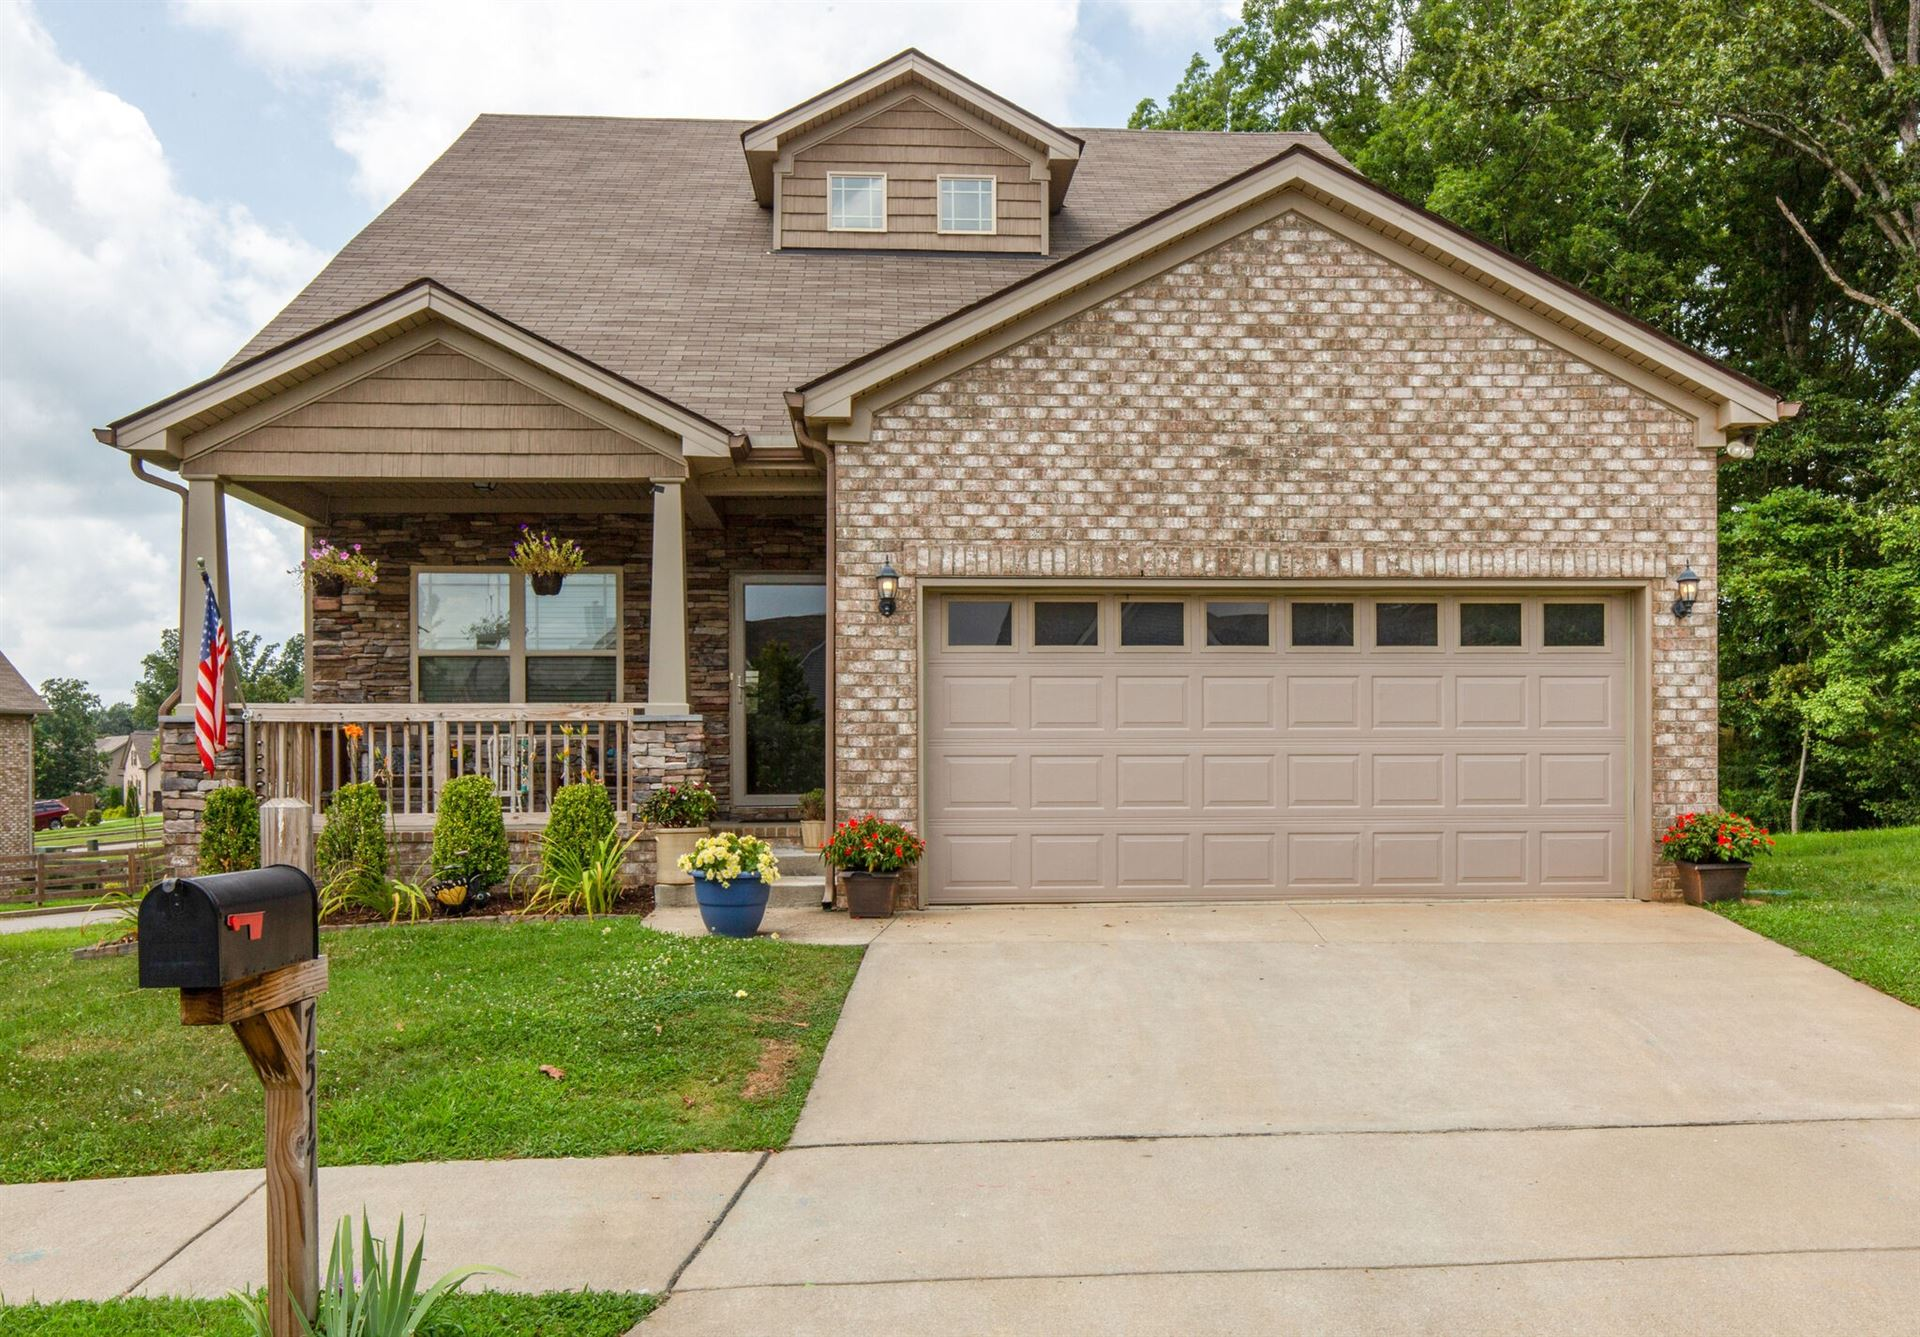 7517 Spicer Ct, Fairview, TN 37062 - MLS#: 2276842